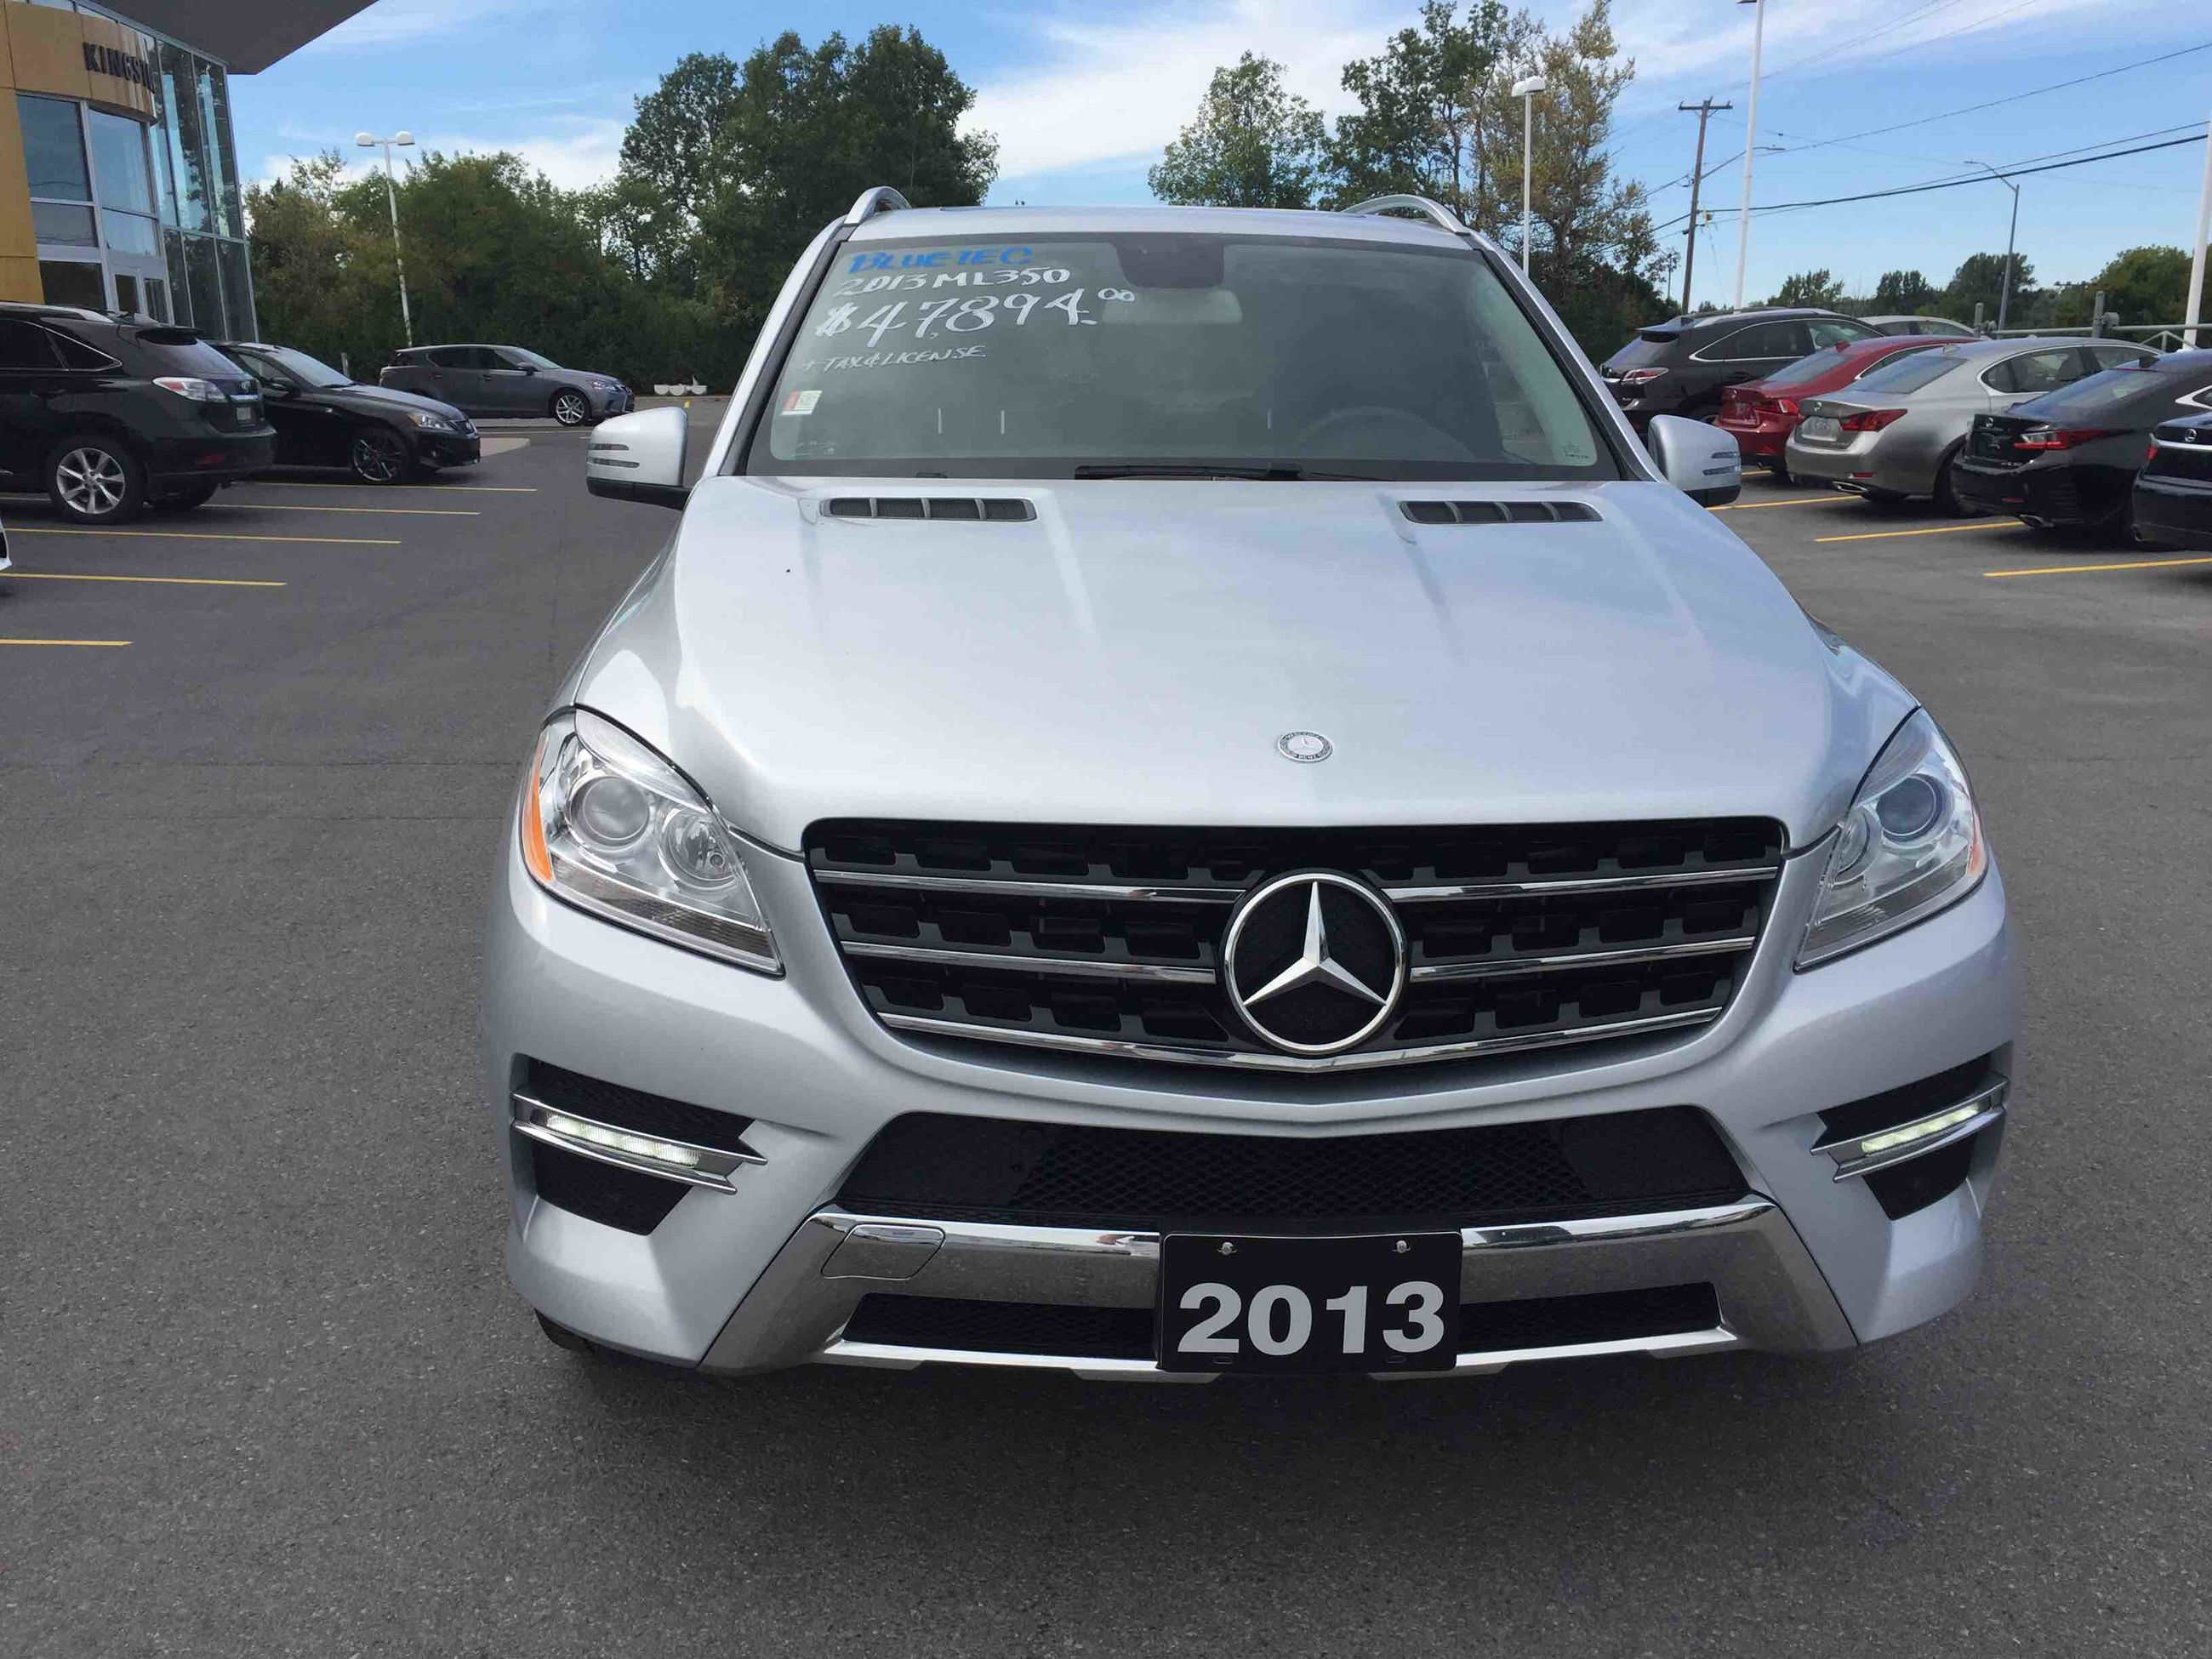 More details for Mercedes benz ml350 4matic 2013